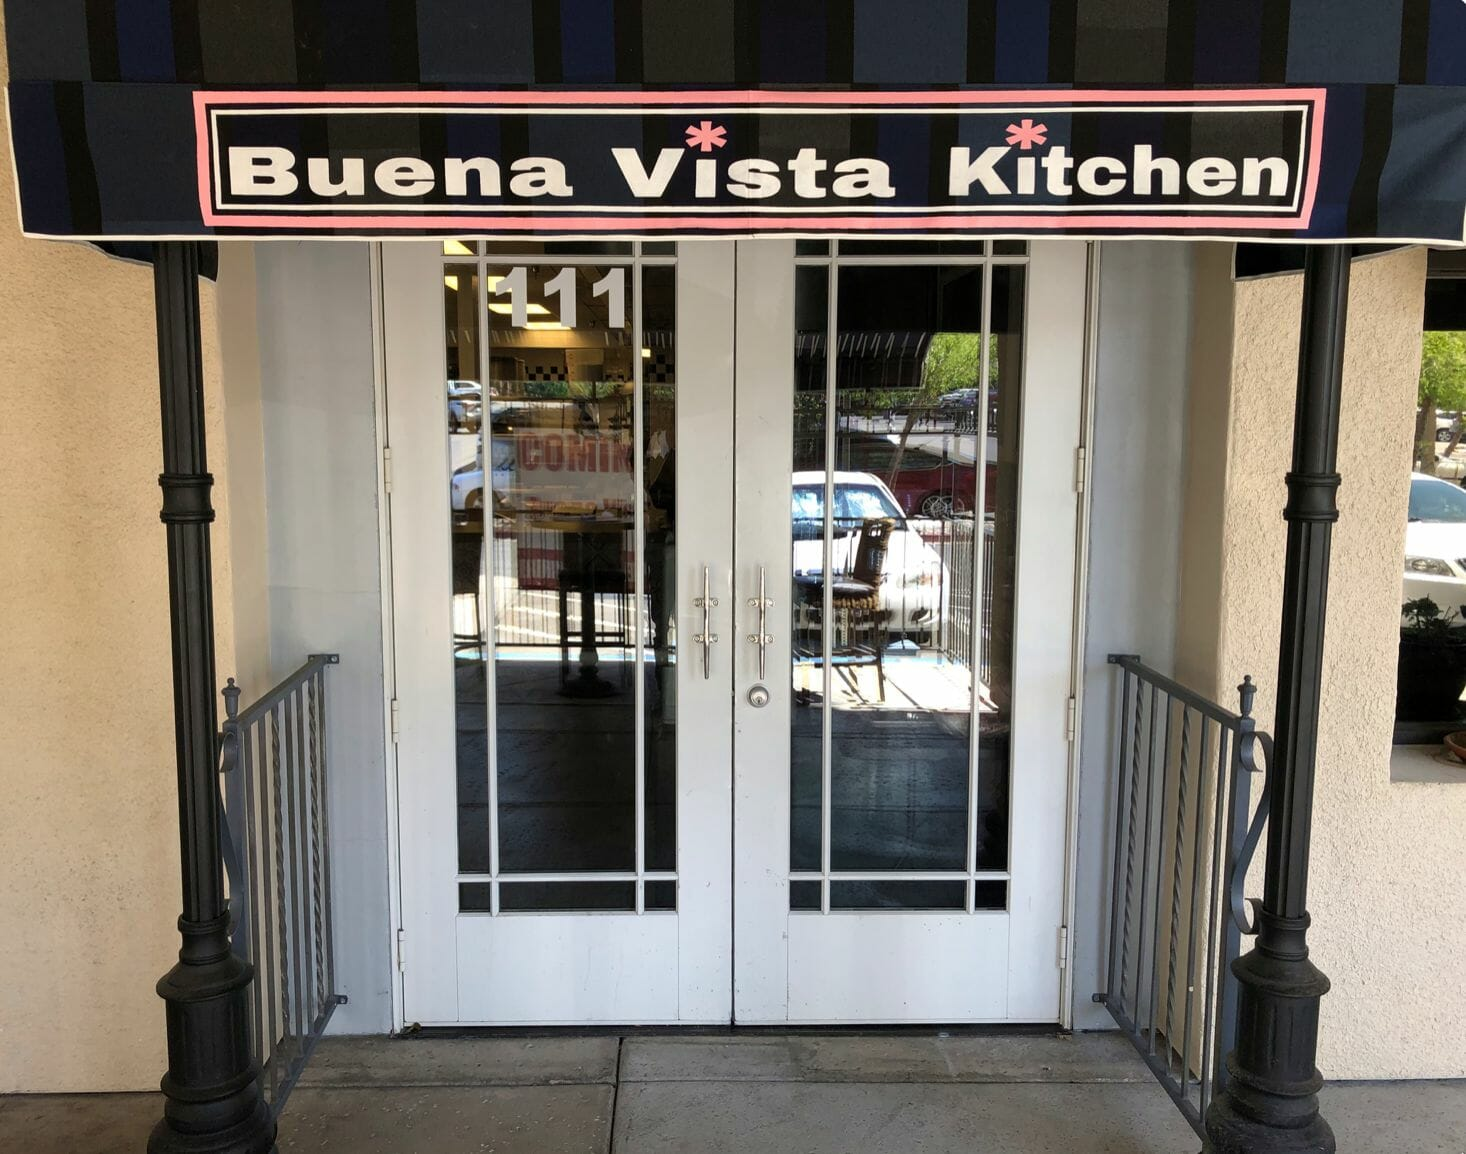 Entrance to Buena Vista Kitchen at Lakeside Event Center